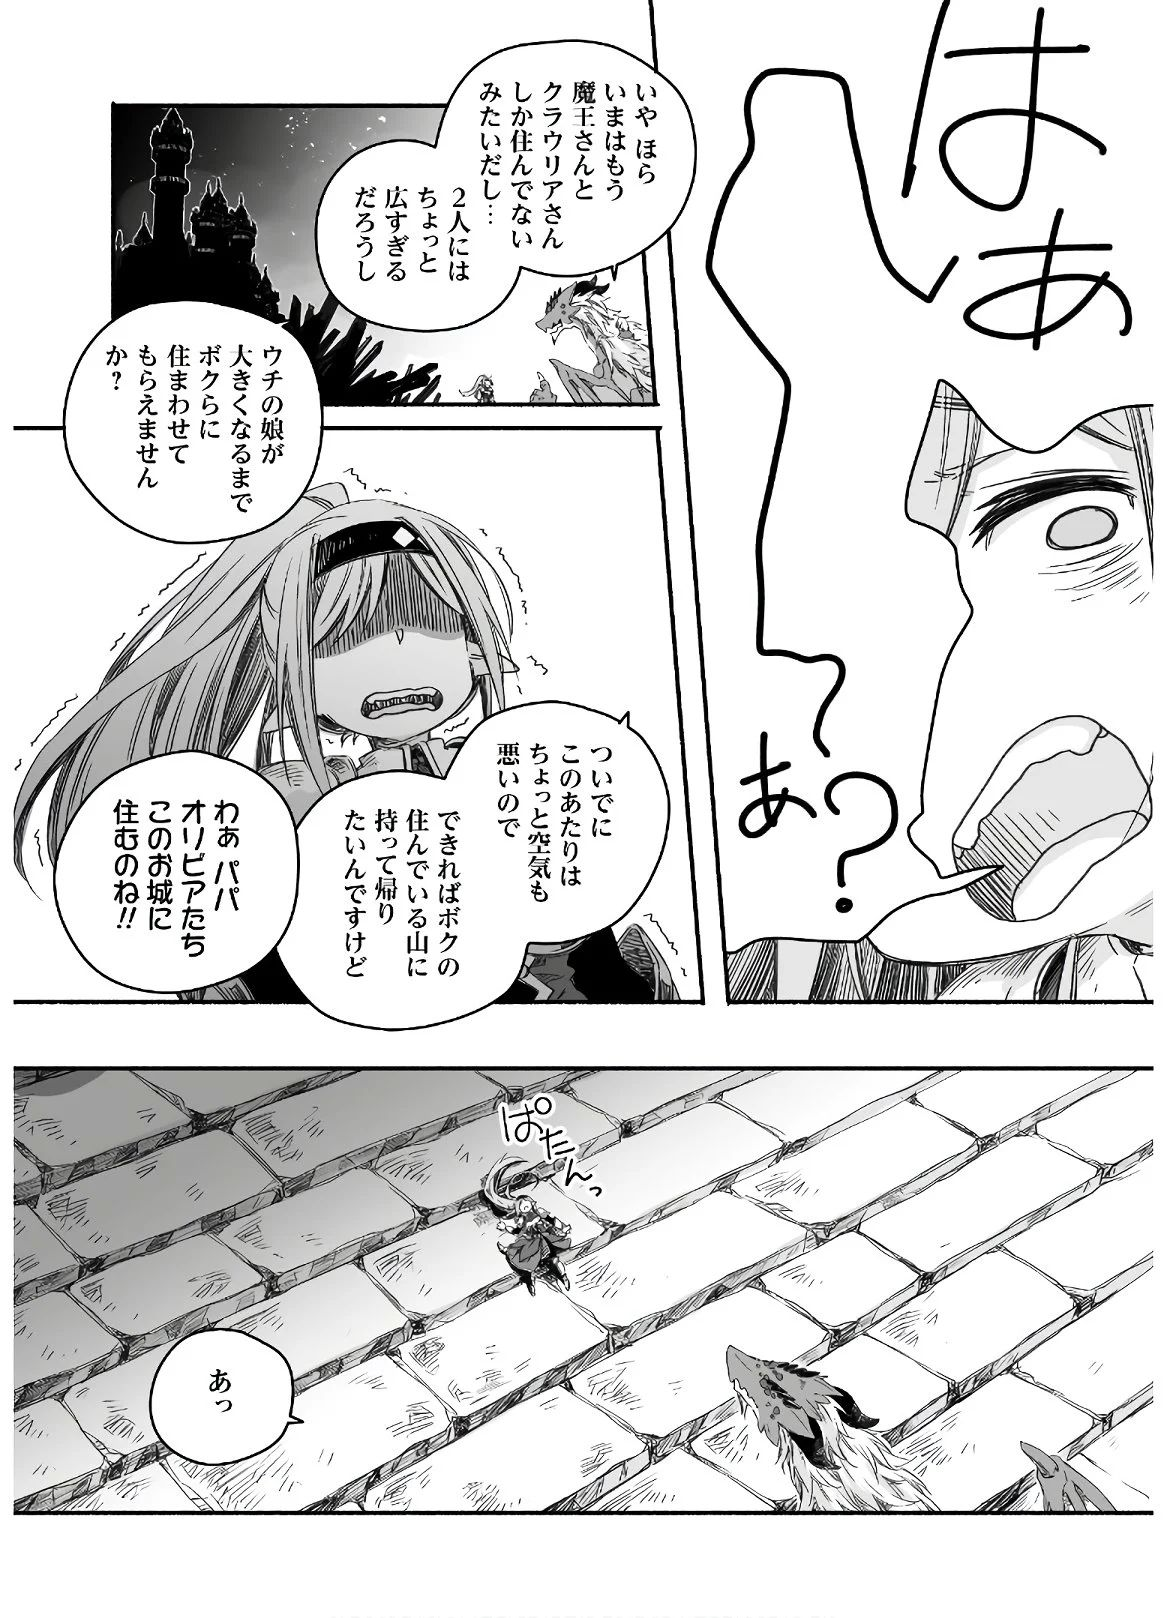 Manga Raw Parenting diary of the strongest dragon who suddenly became a dad Manga Chapter 03